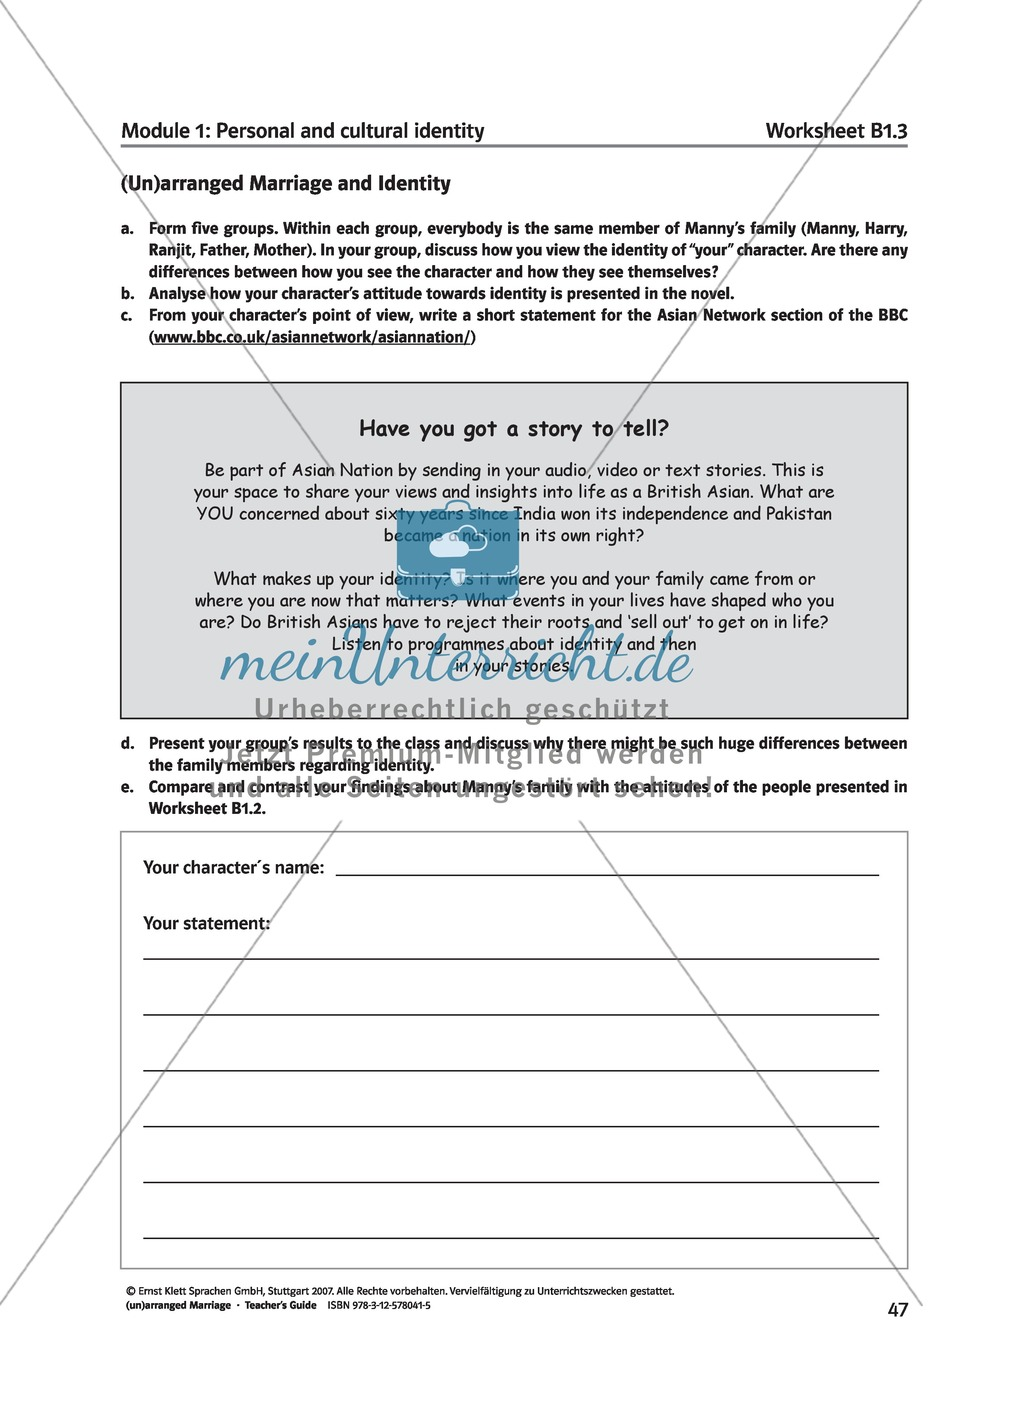 (Un)arranged marriage - Themen für die Oberstufe: Personal and cultural identity in general and in reference to the novel Preview 5